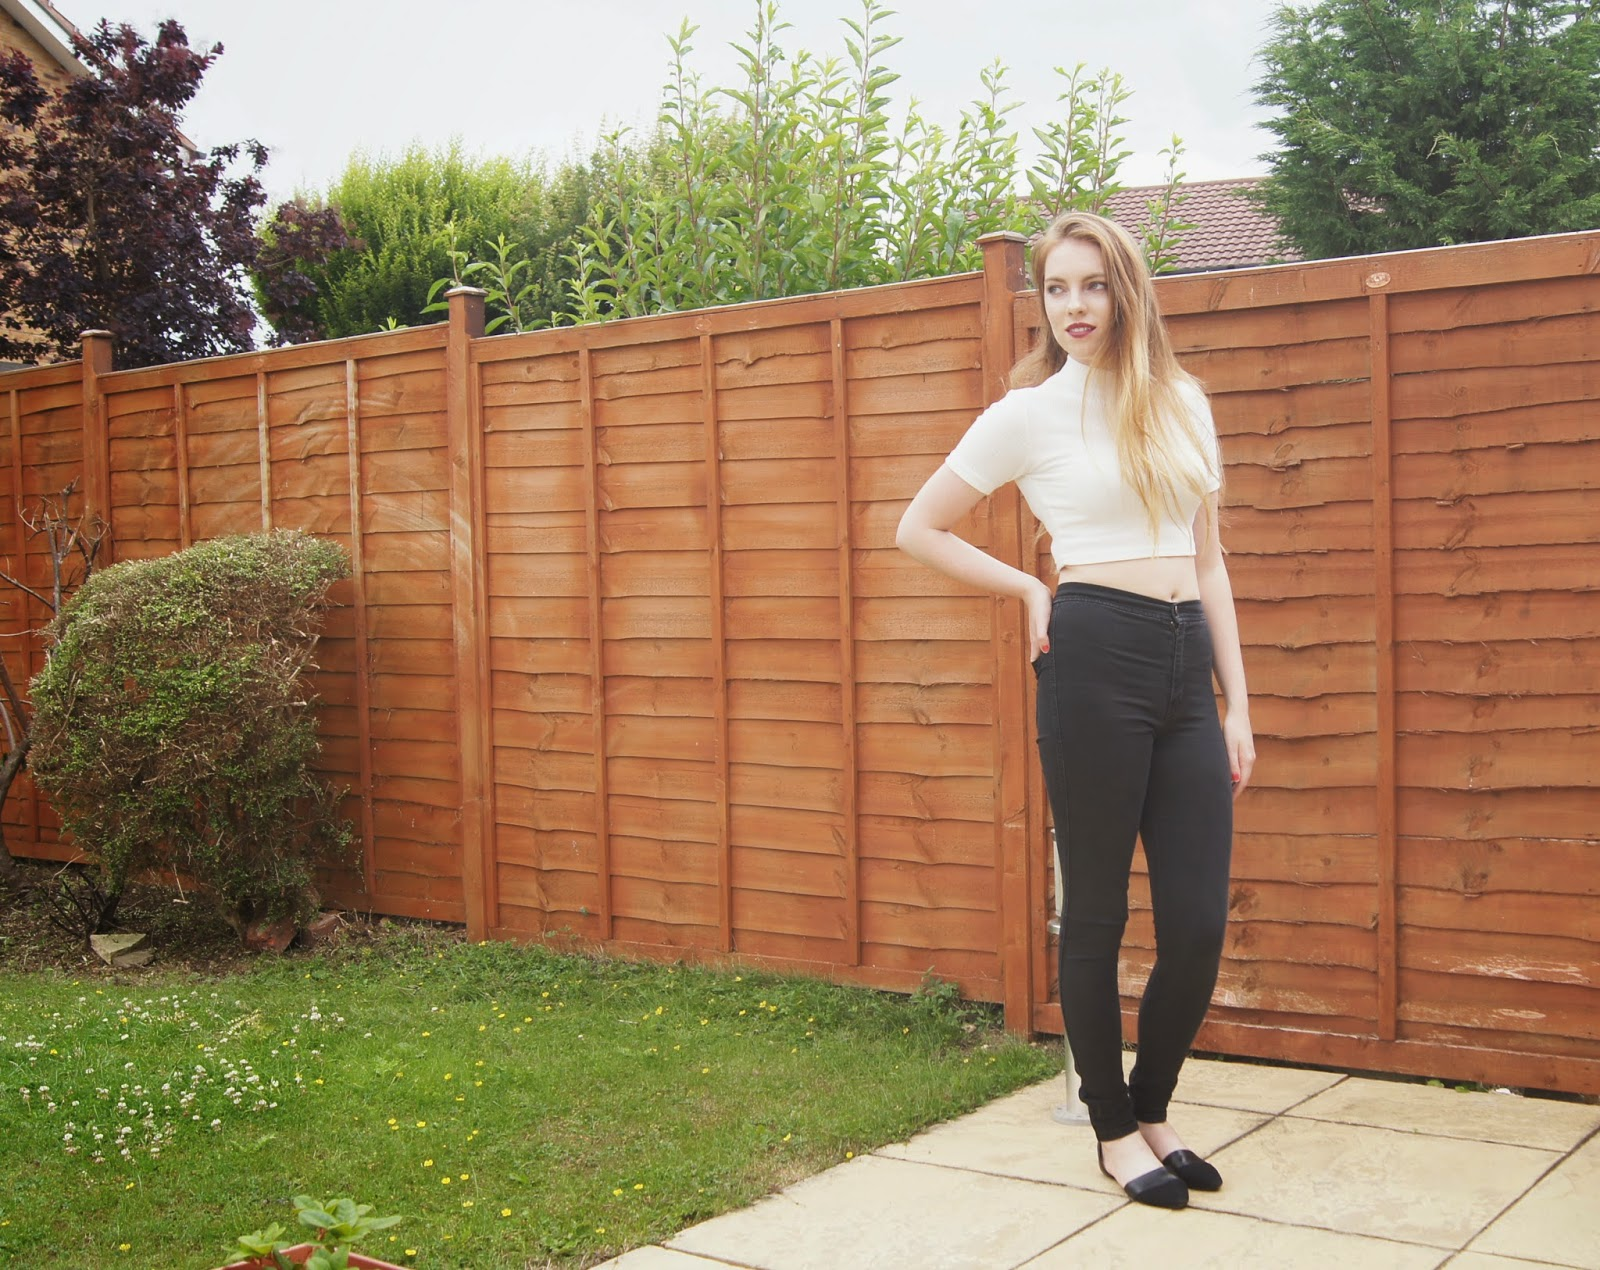 ASOS Uber High waisted jeans